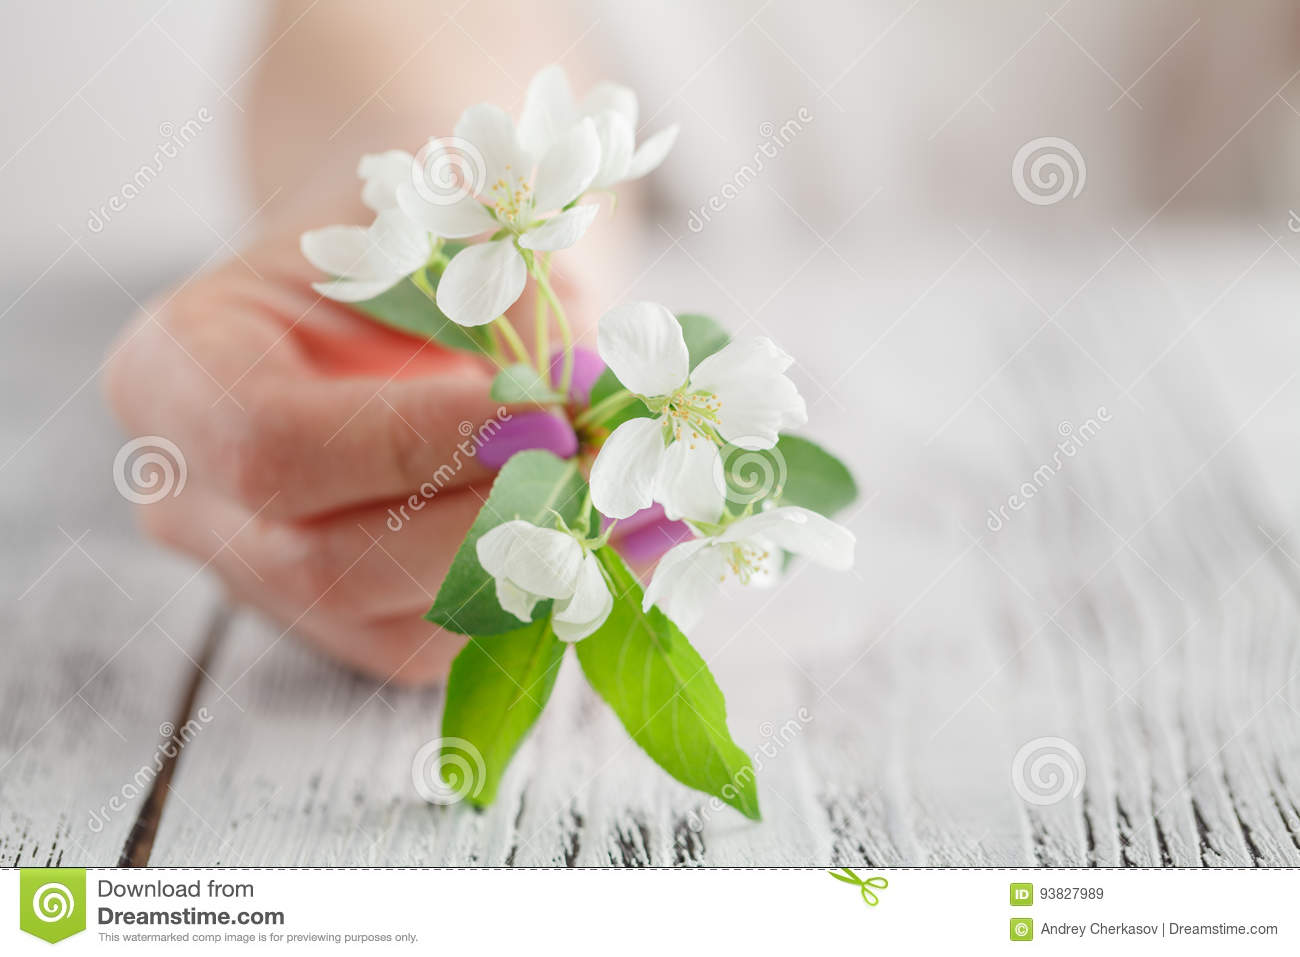 Female hands with manicure holding an apple tree flower. Apple or sakura spring blossom.